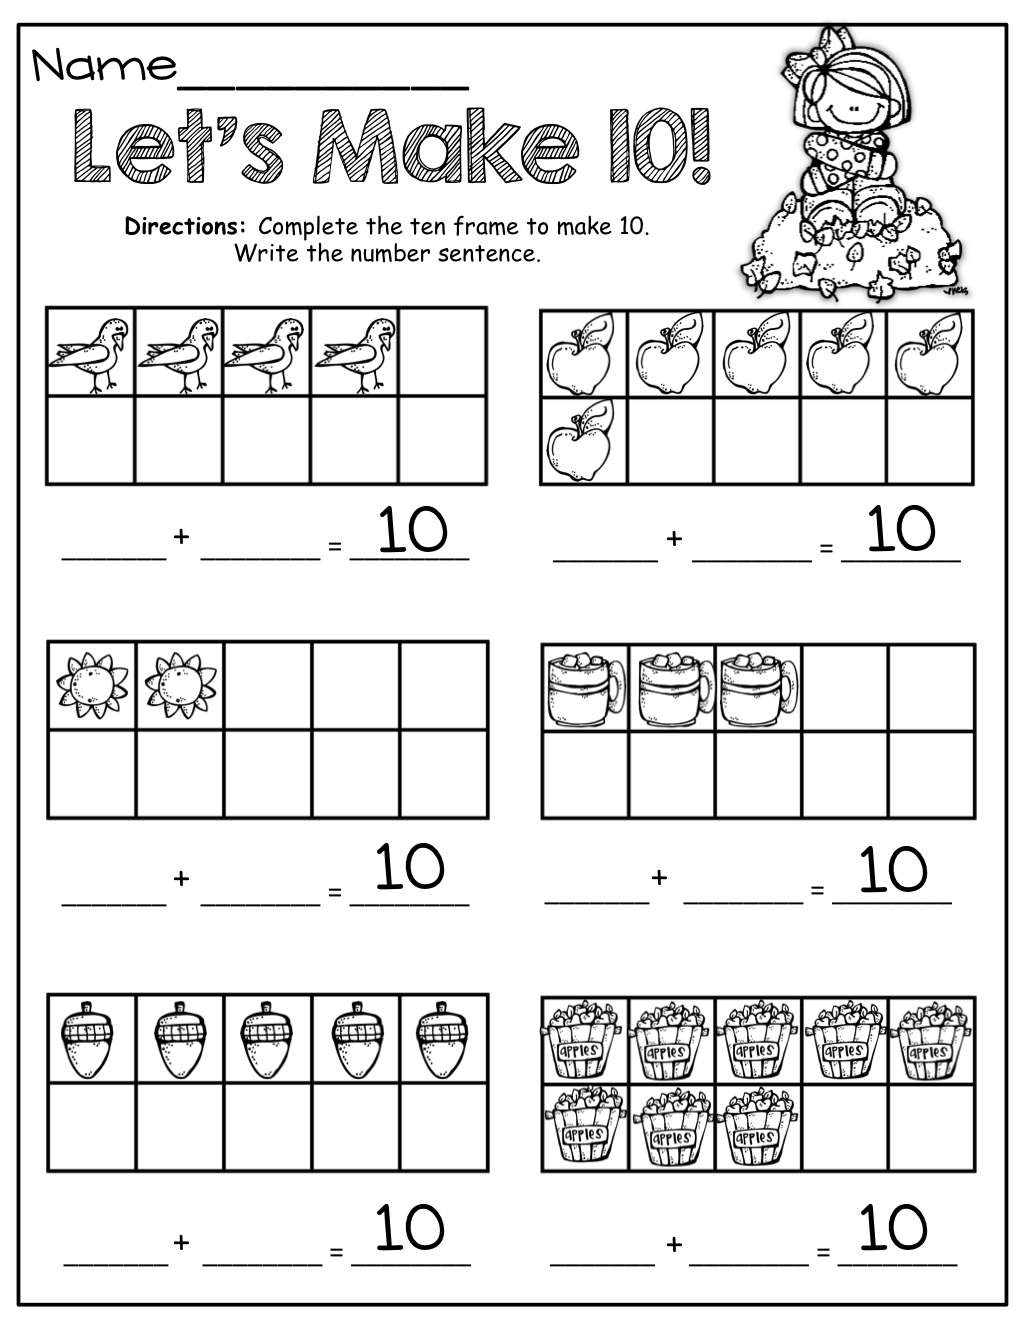 making 10 with fall 10 frames math pinterest ten frames math and kindergarten. Black Bedroom Furniture Sets. Home Design Ideas